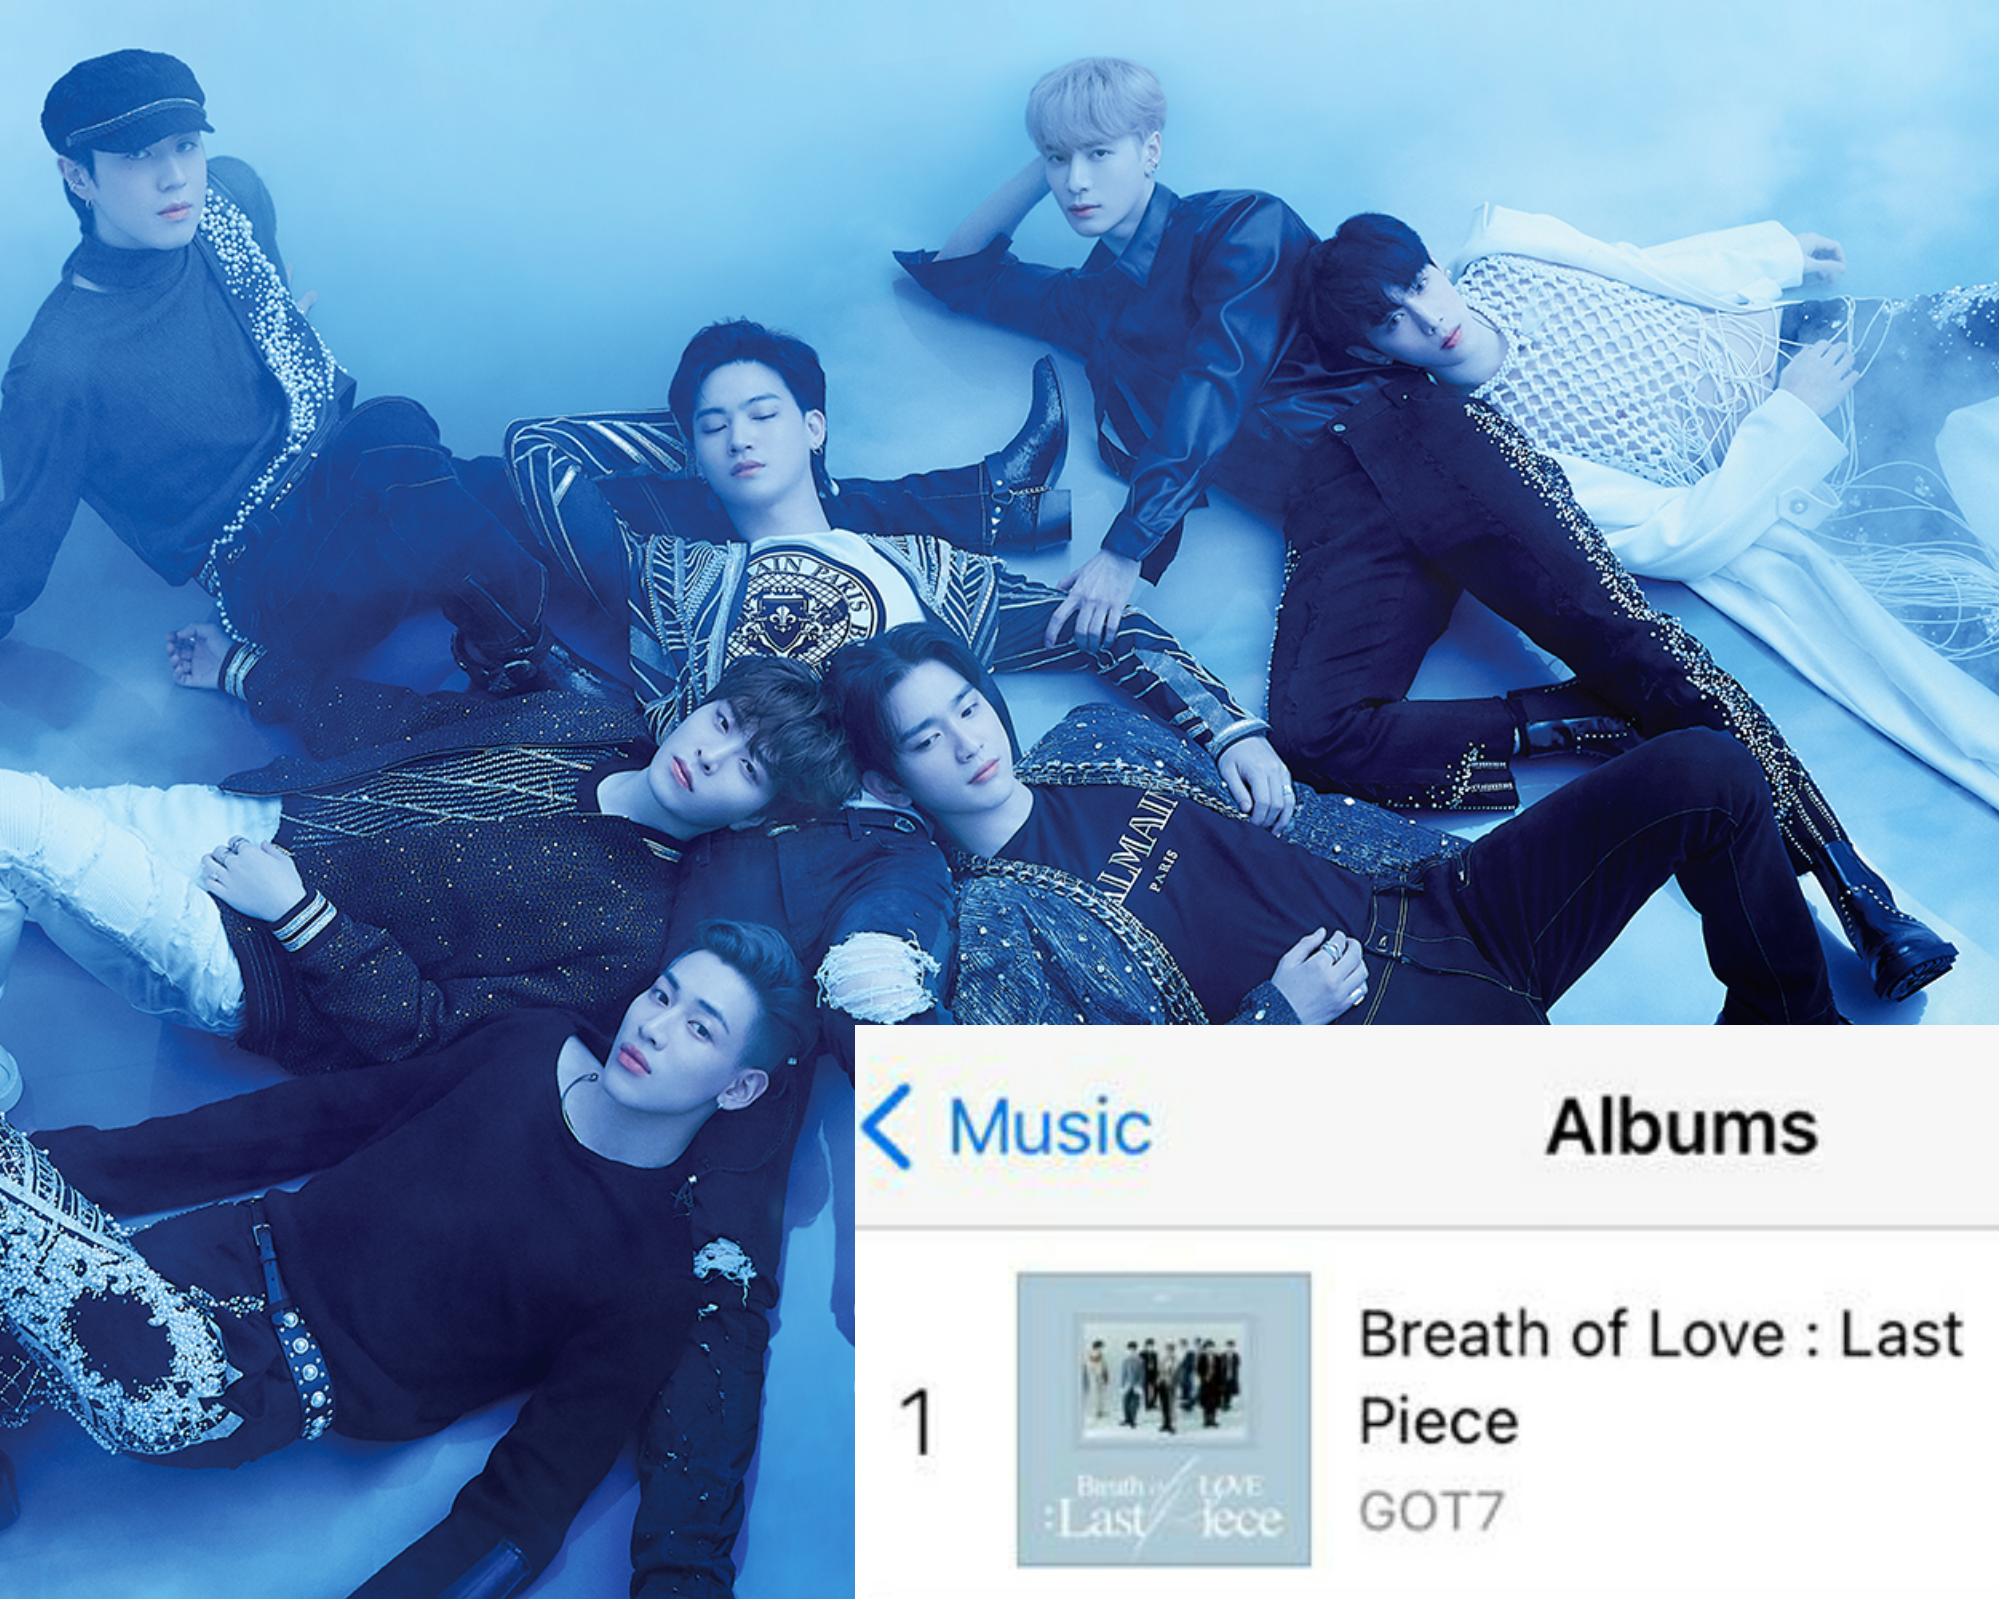 """GOT7 charts at #1 on iTunes India Album Chart with Album, """"Breath of Love: Last Piece"""""""